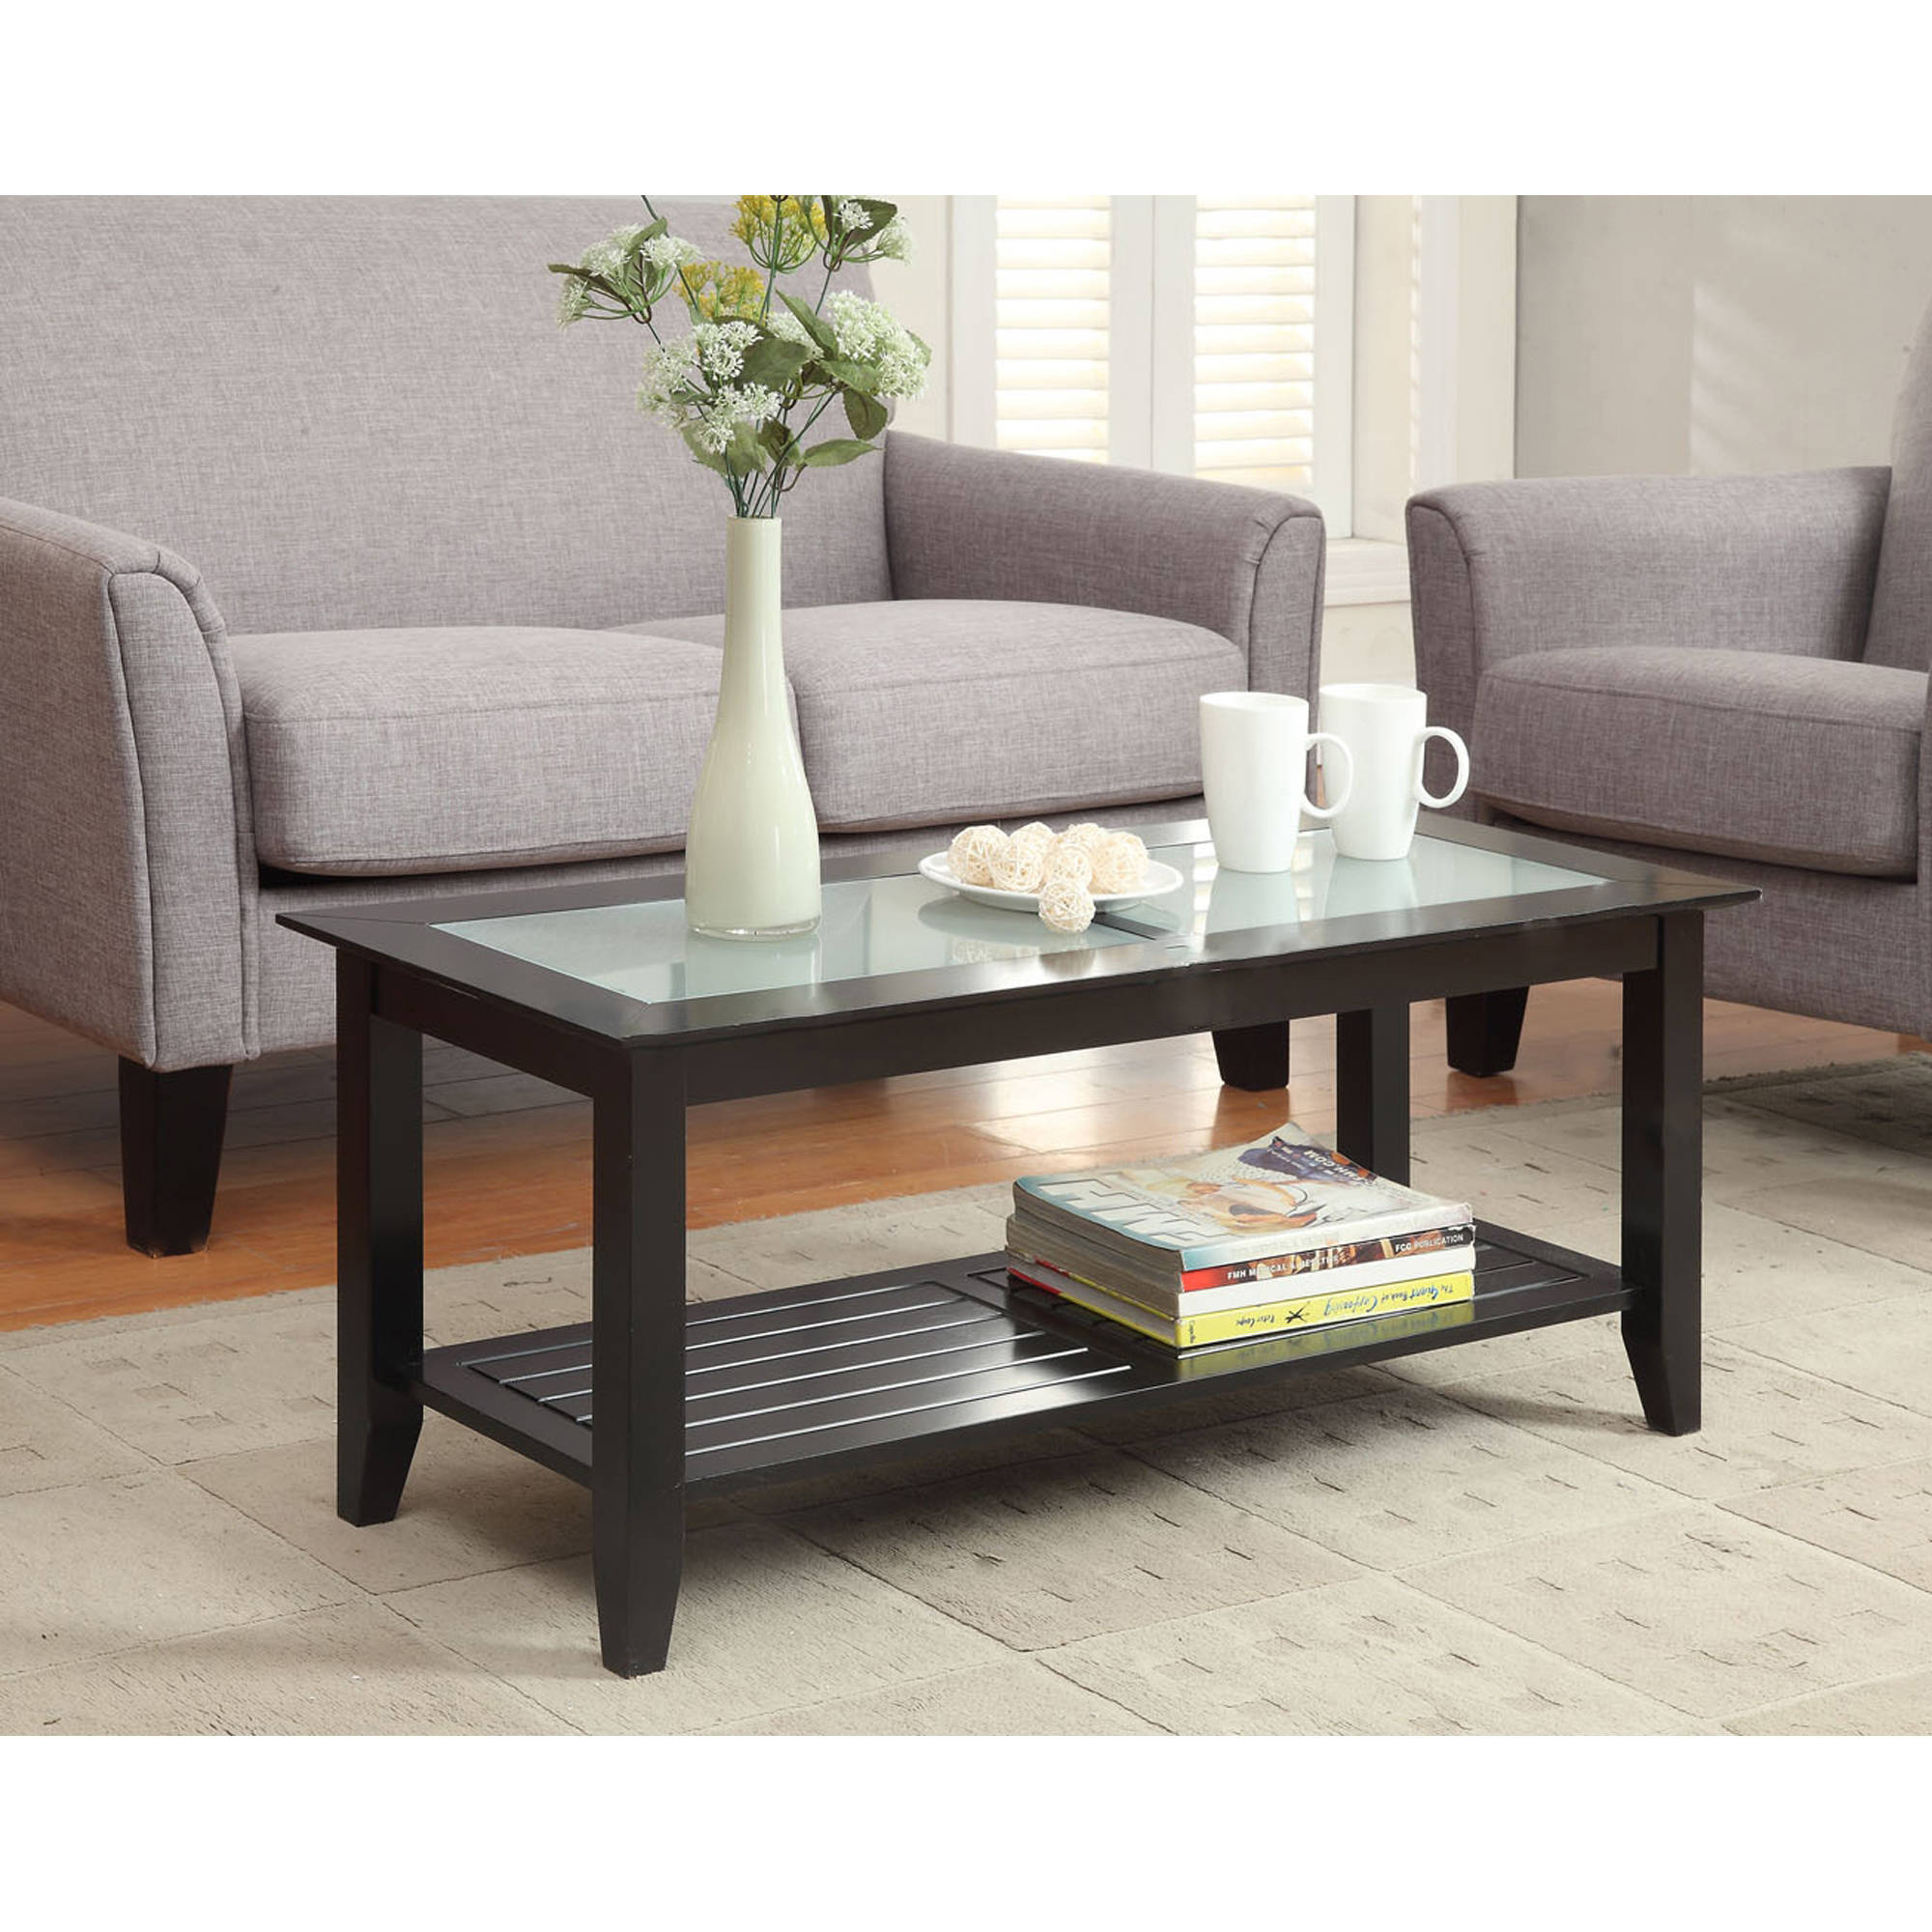 Black and wood coffee table - Convenience Concepts Carmel Coffee Table Multiple Colors Walmart Com